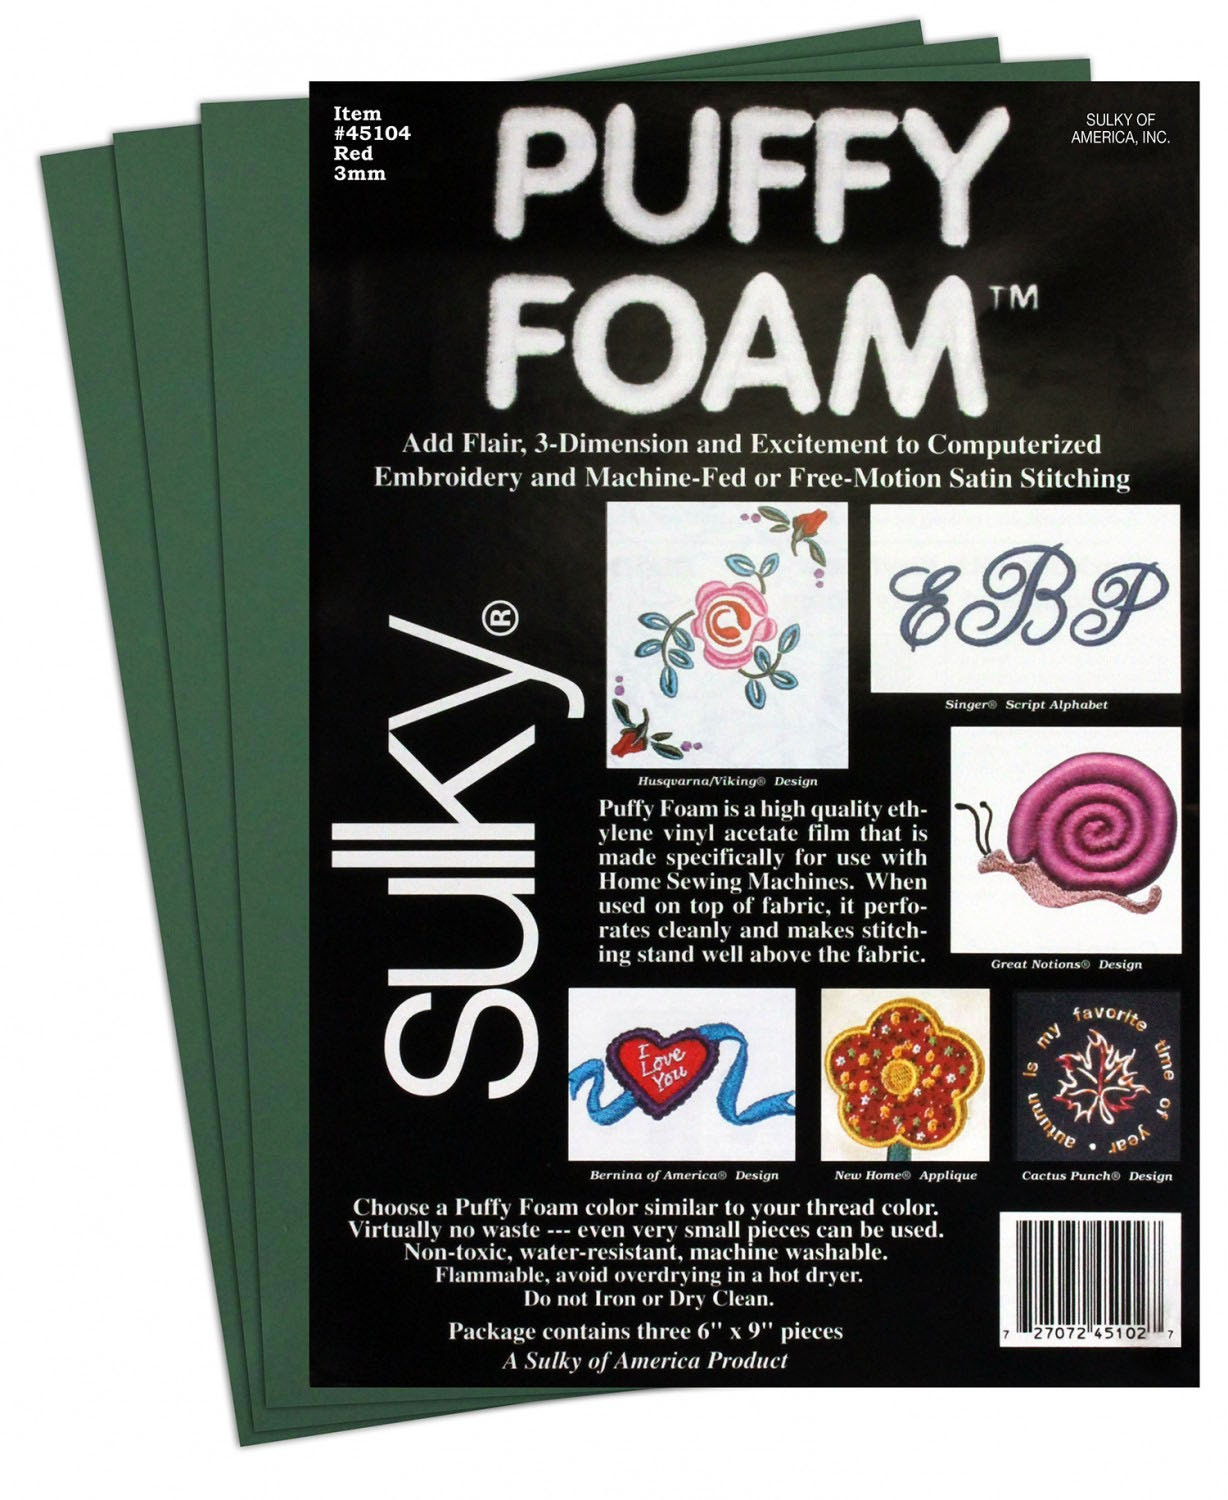 Forest Green Sulky Puffy Foam 6 X 9 3 Pcs Per Pack 2mm